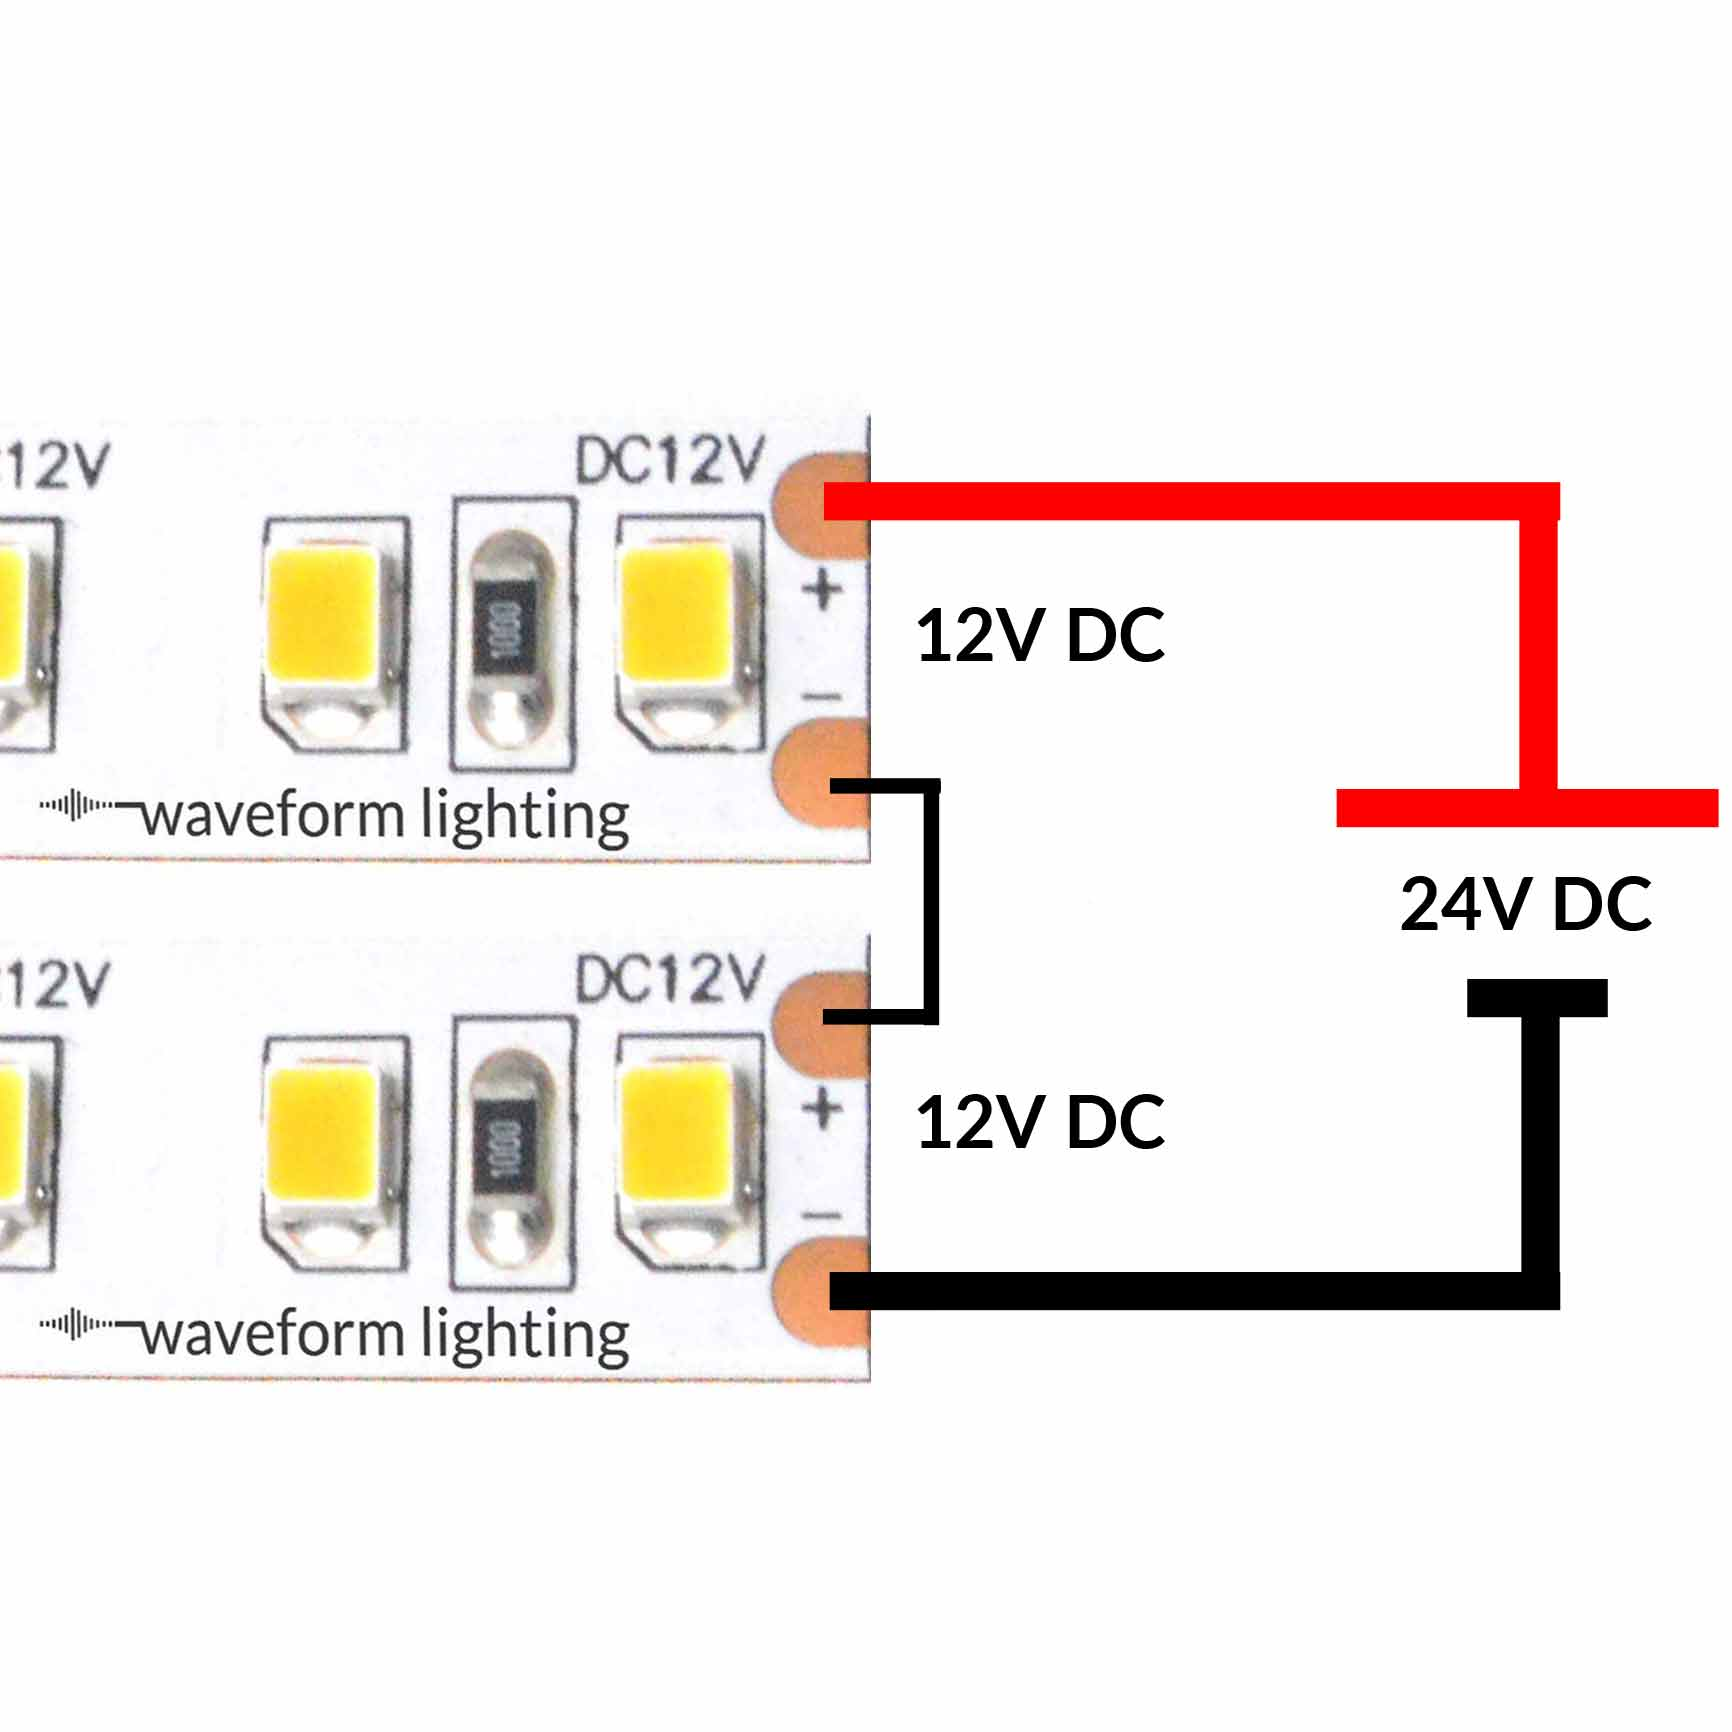 led strip light wiring diagram suzuki fiero using a 12v in 24v system waveform lighting by connecting the strips this way power source is effectively split between two segments which expect each